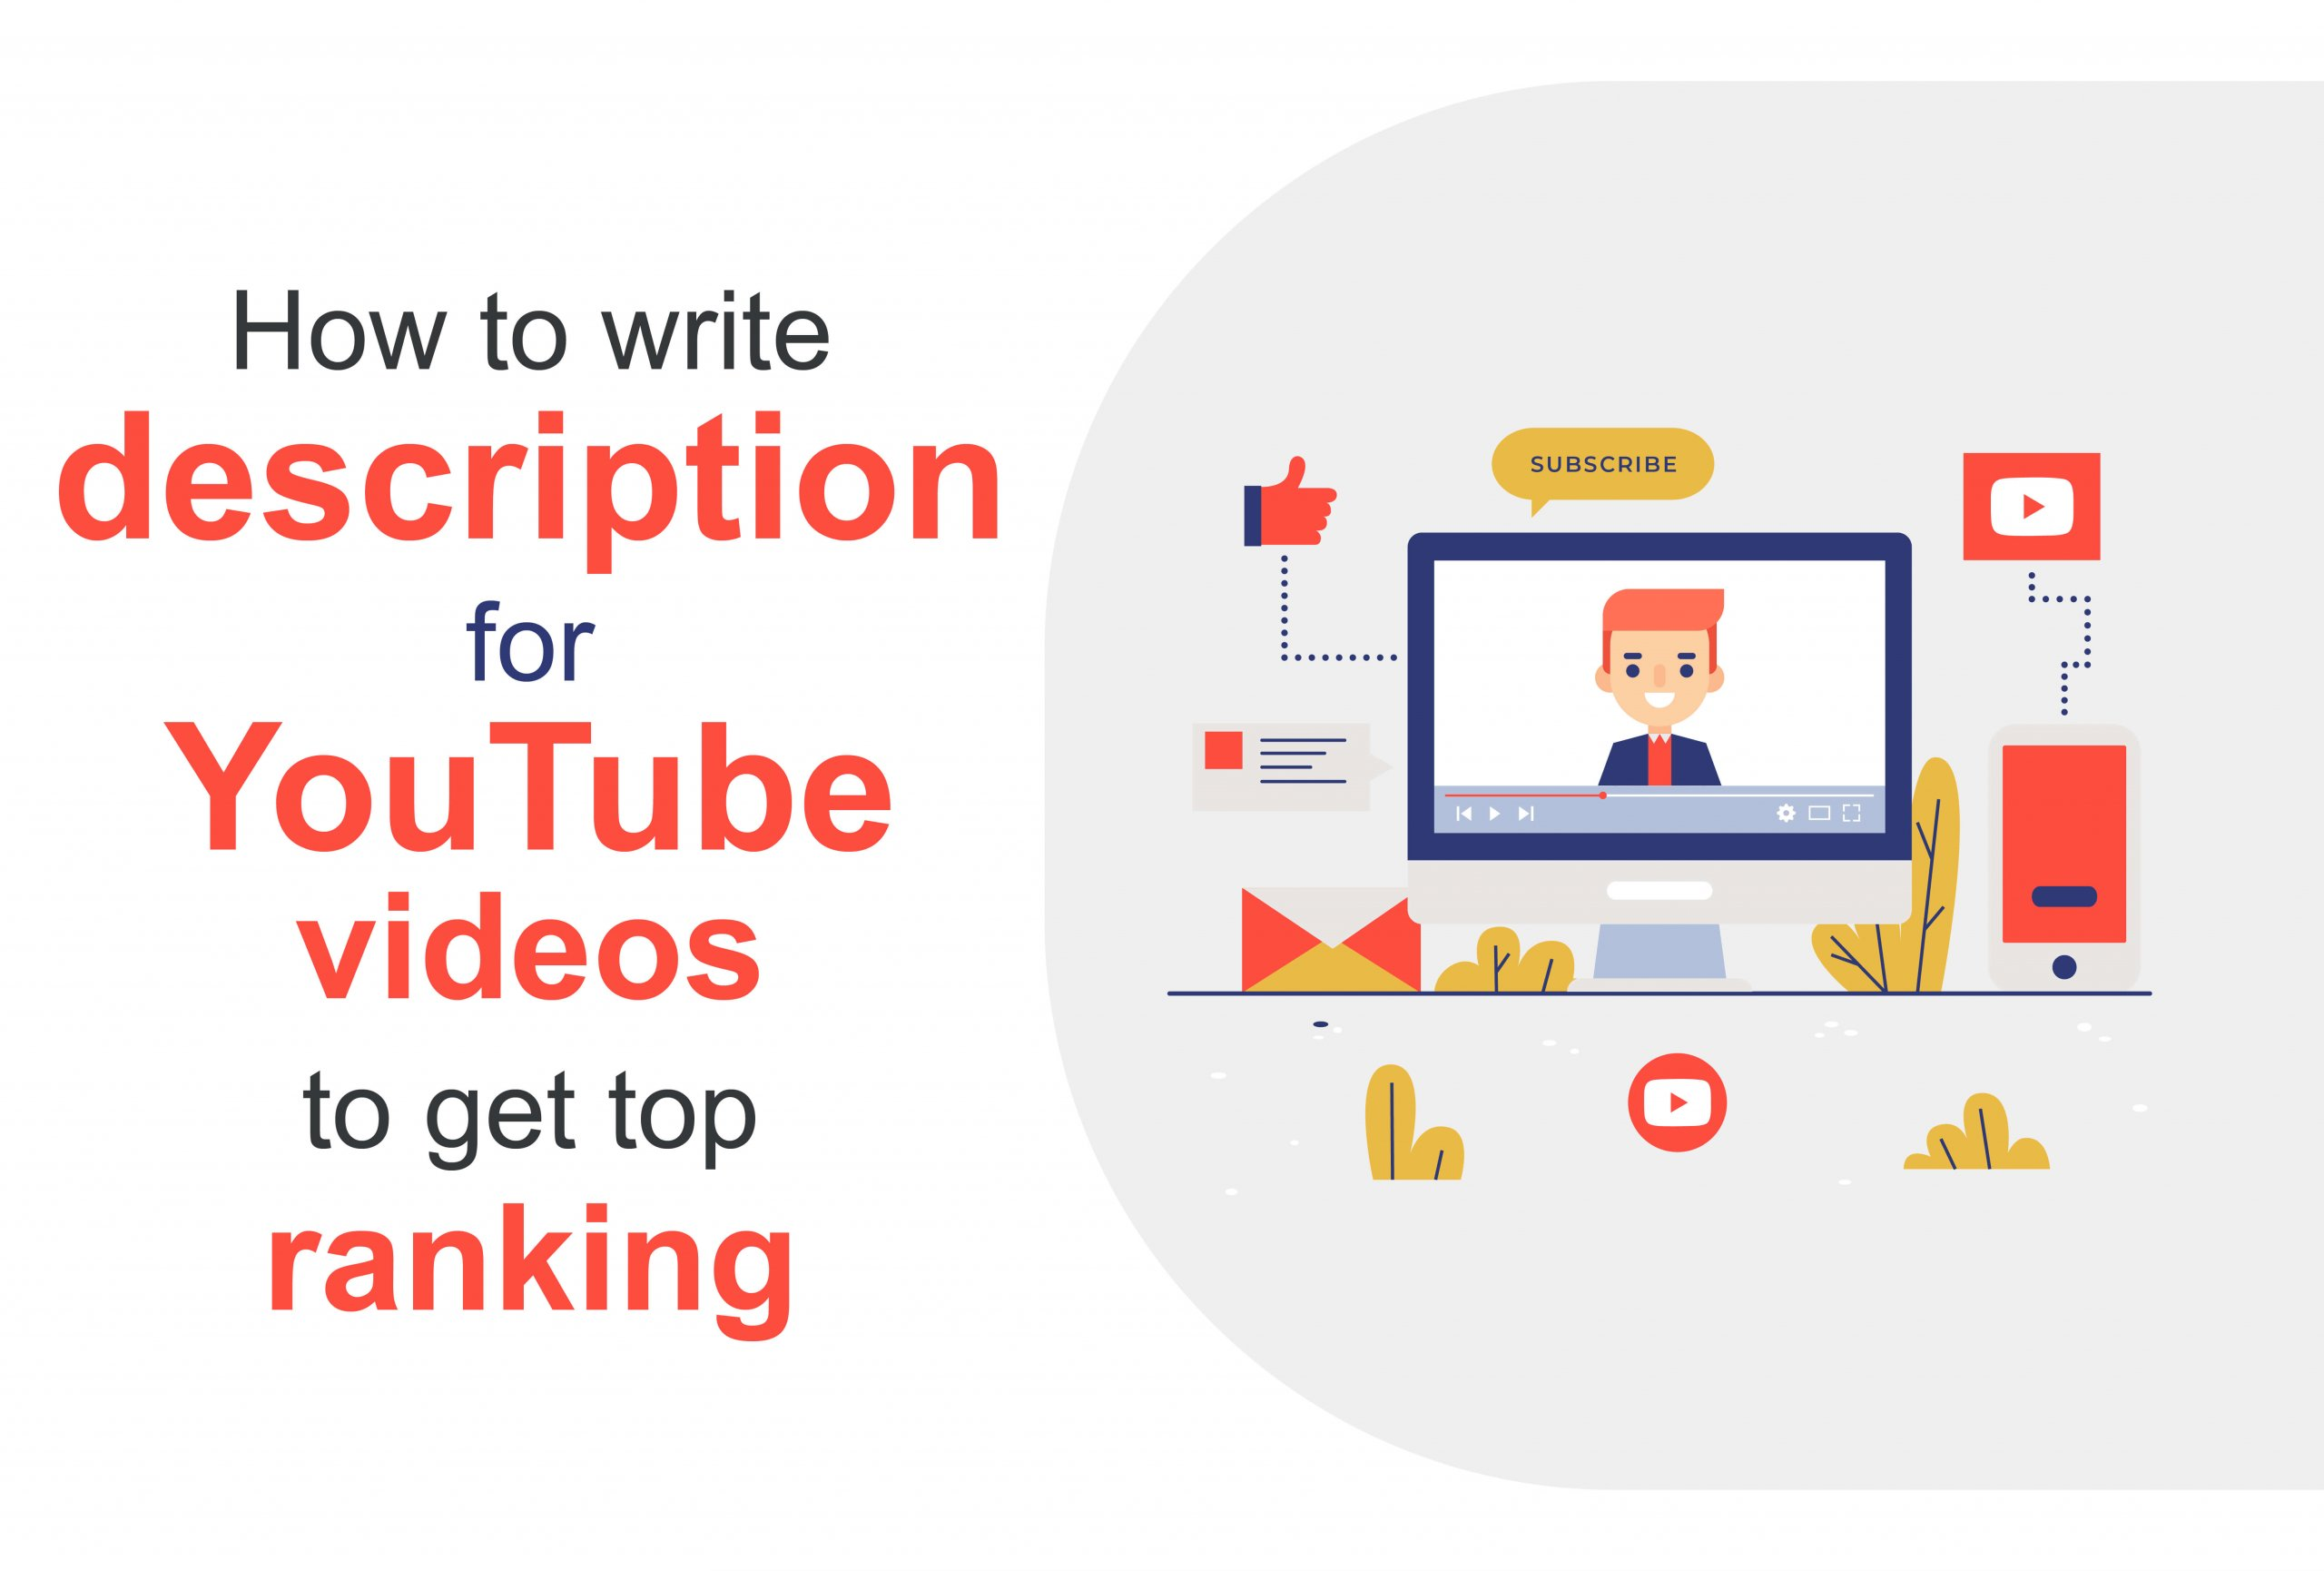 How to write description for YouTube videos to get top ranking in seo